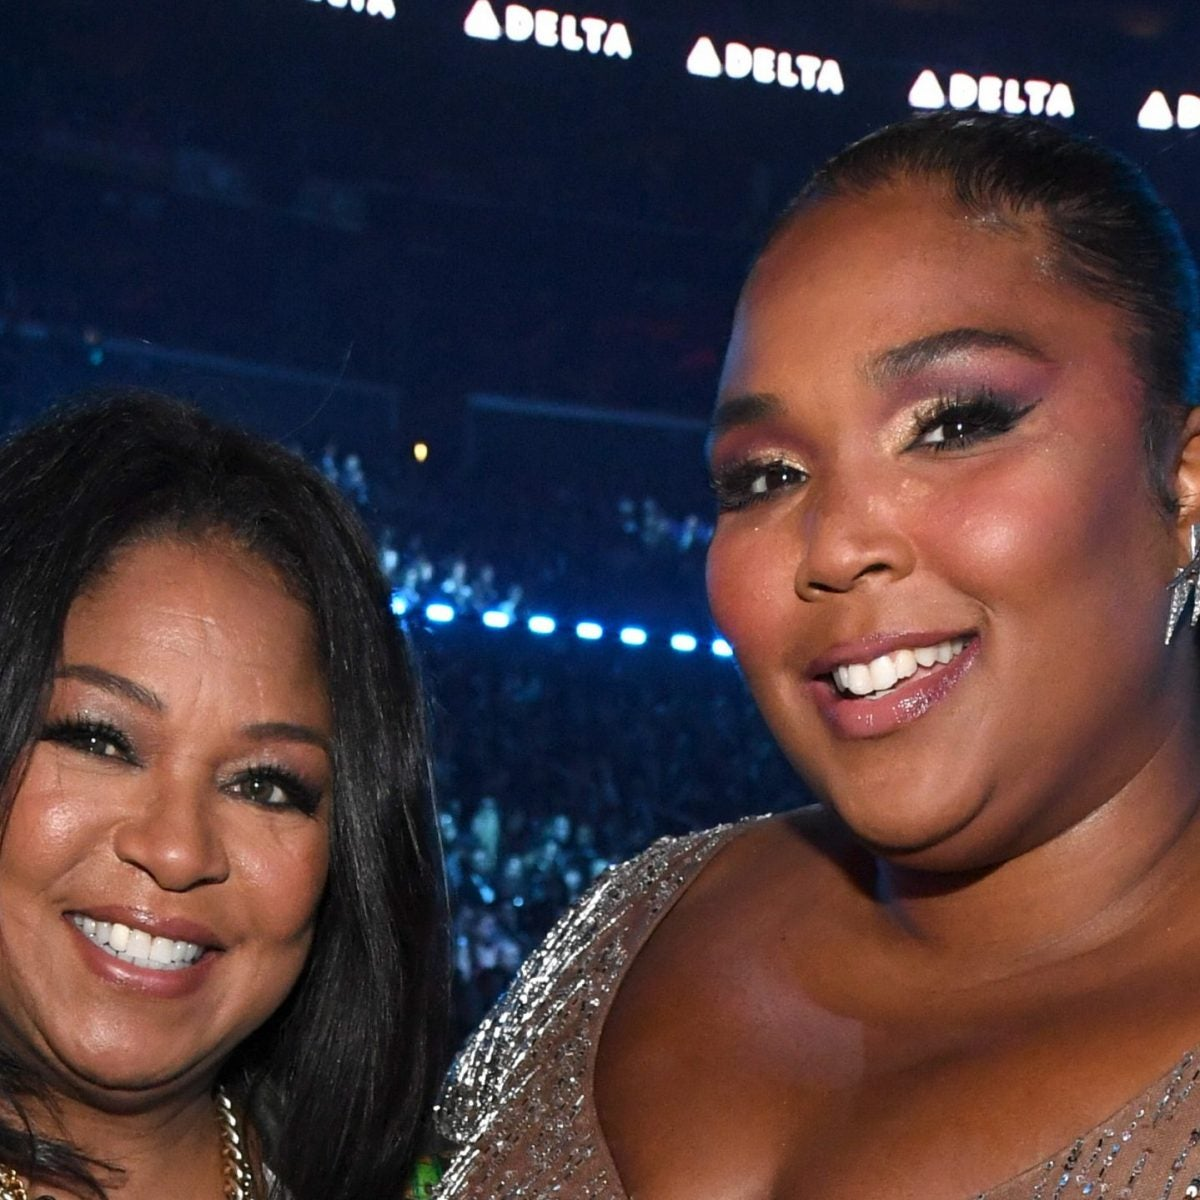 Lizzo Surprised Her Mother With A New Car For Christmas